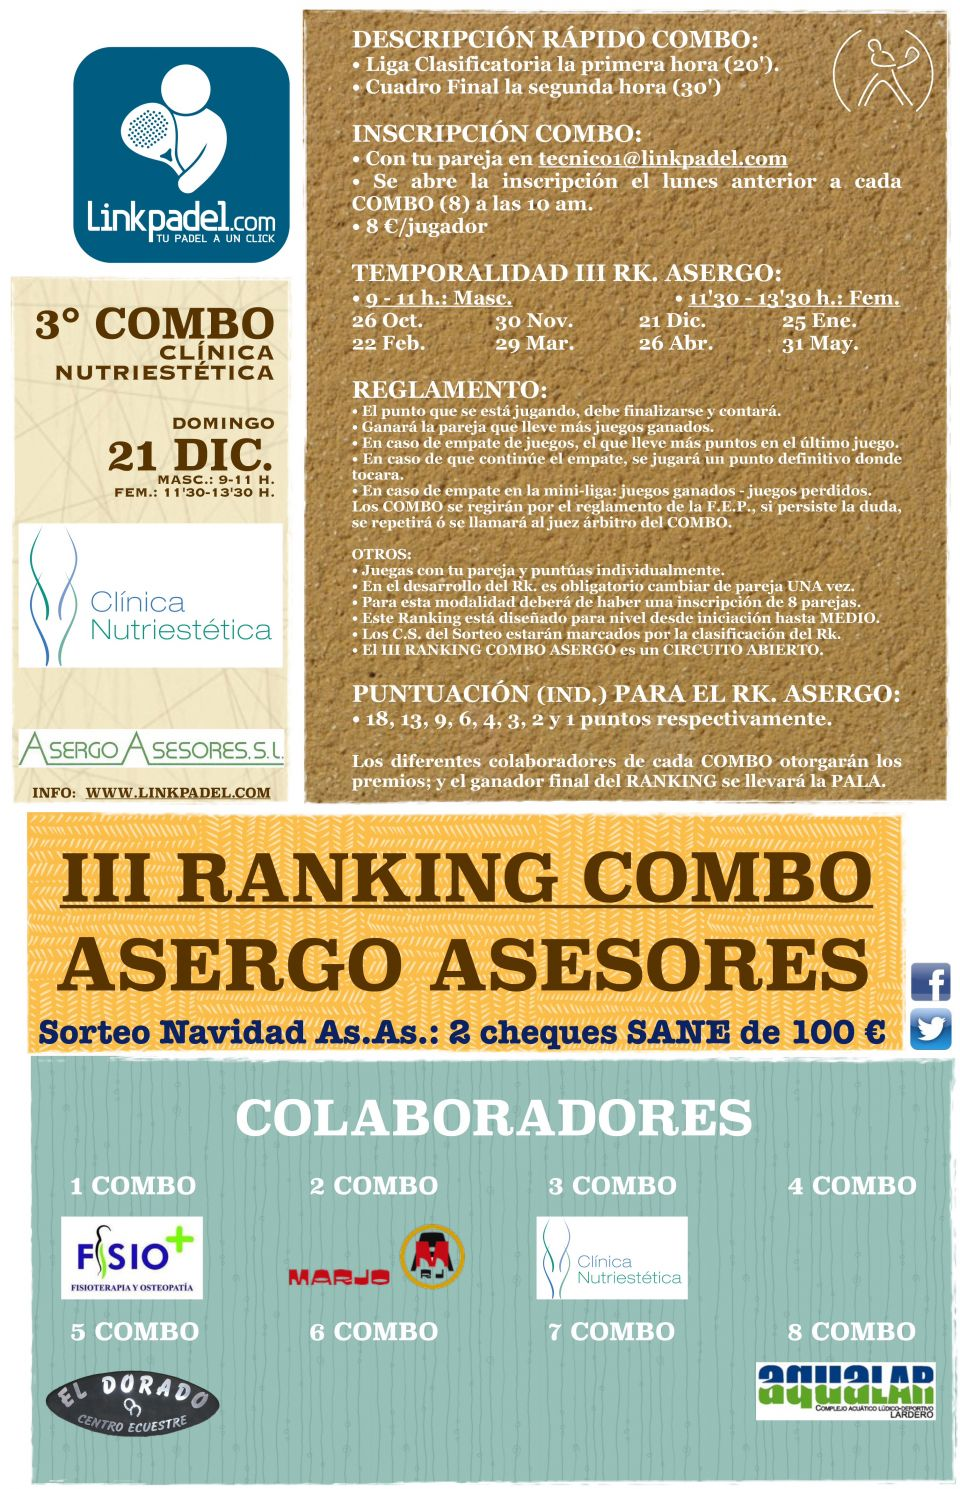 Info en: http://www.linkpadel.com/index.php/torneos/234-3combo-clinica-nutriestetica-del-iii-ranking-asergo-asesores